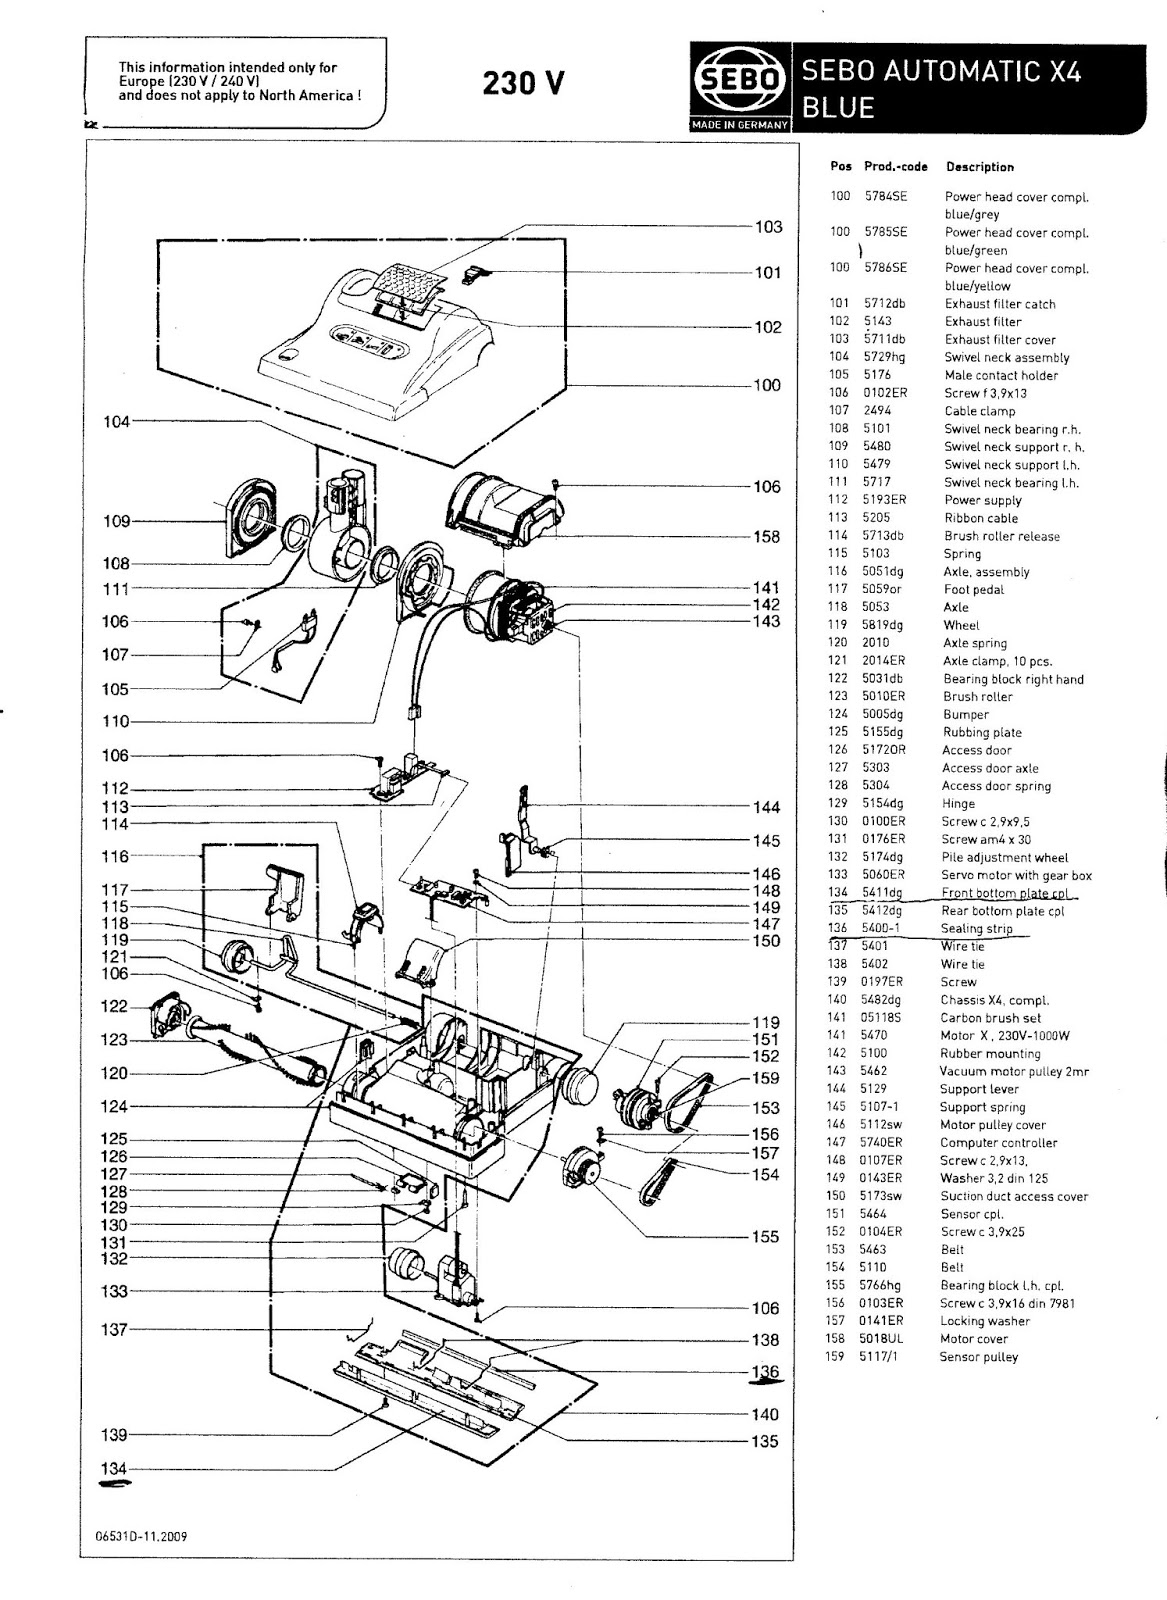 small resolution of this is the parts diagram and exploded view for the sebo x4 vacuum with blue part numbers ideal for working out what you need and contacting